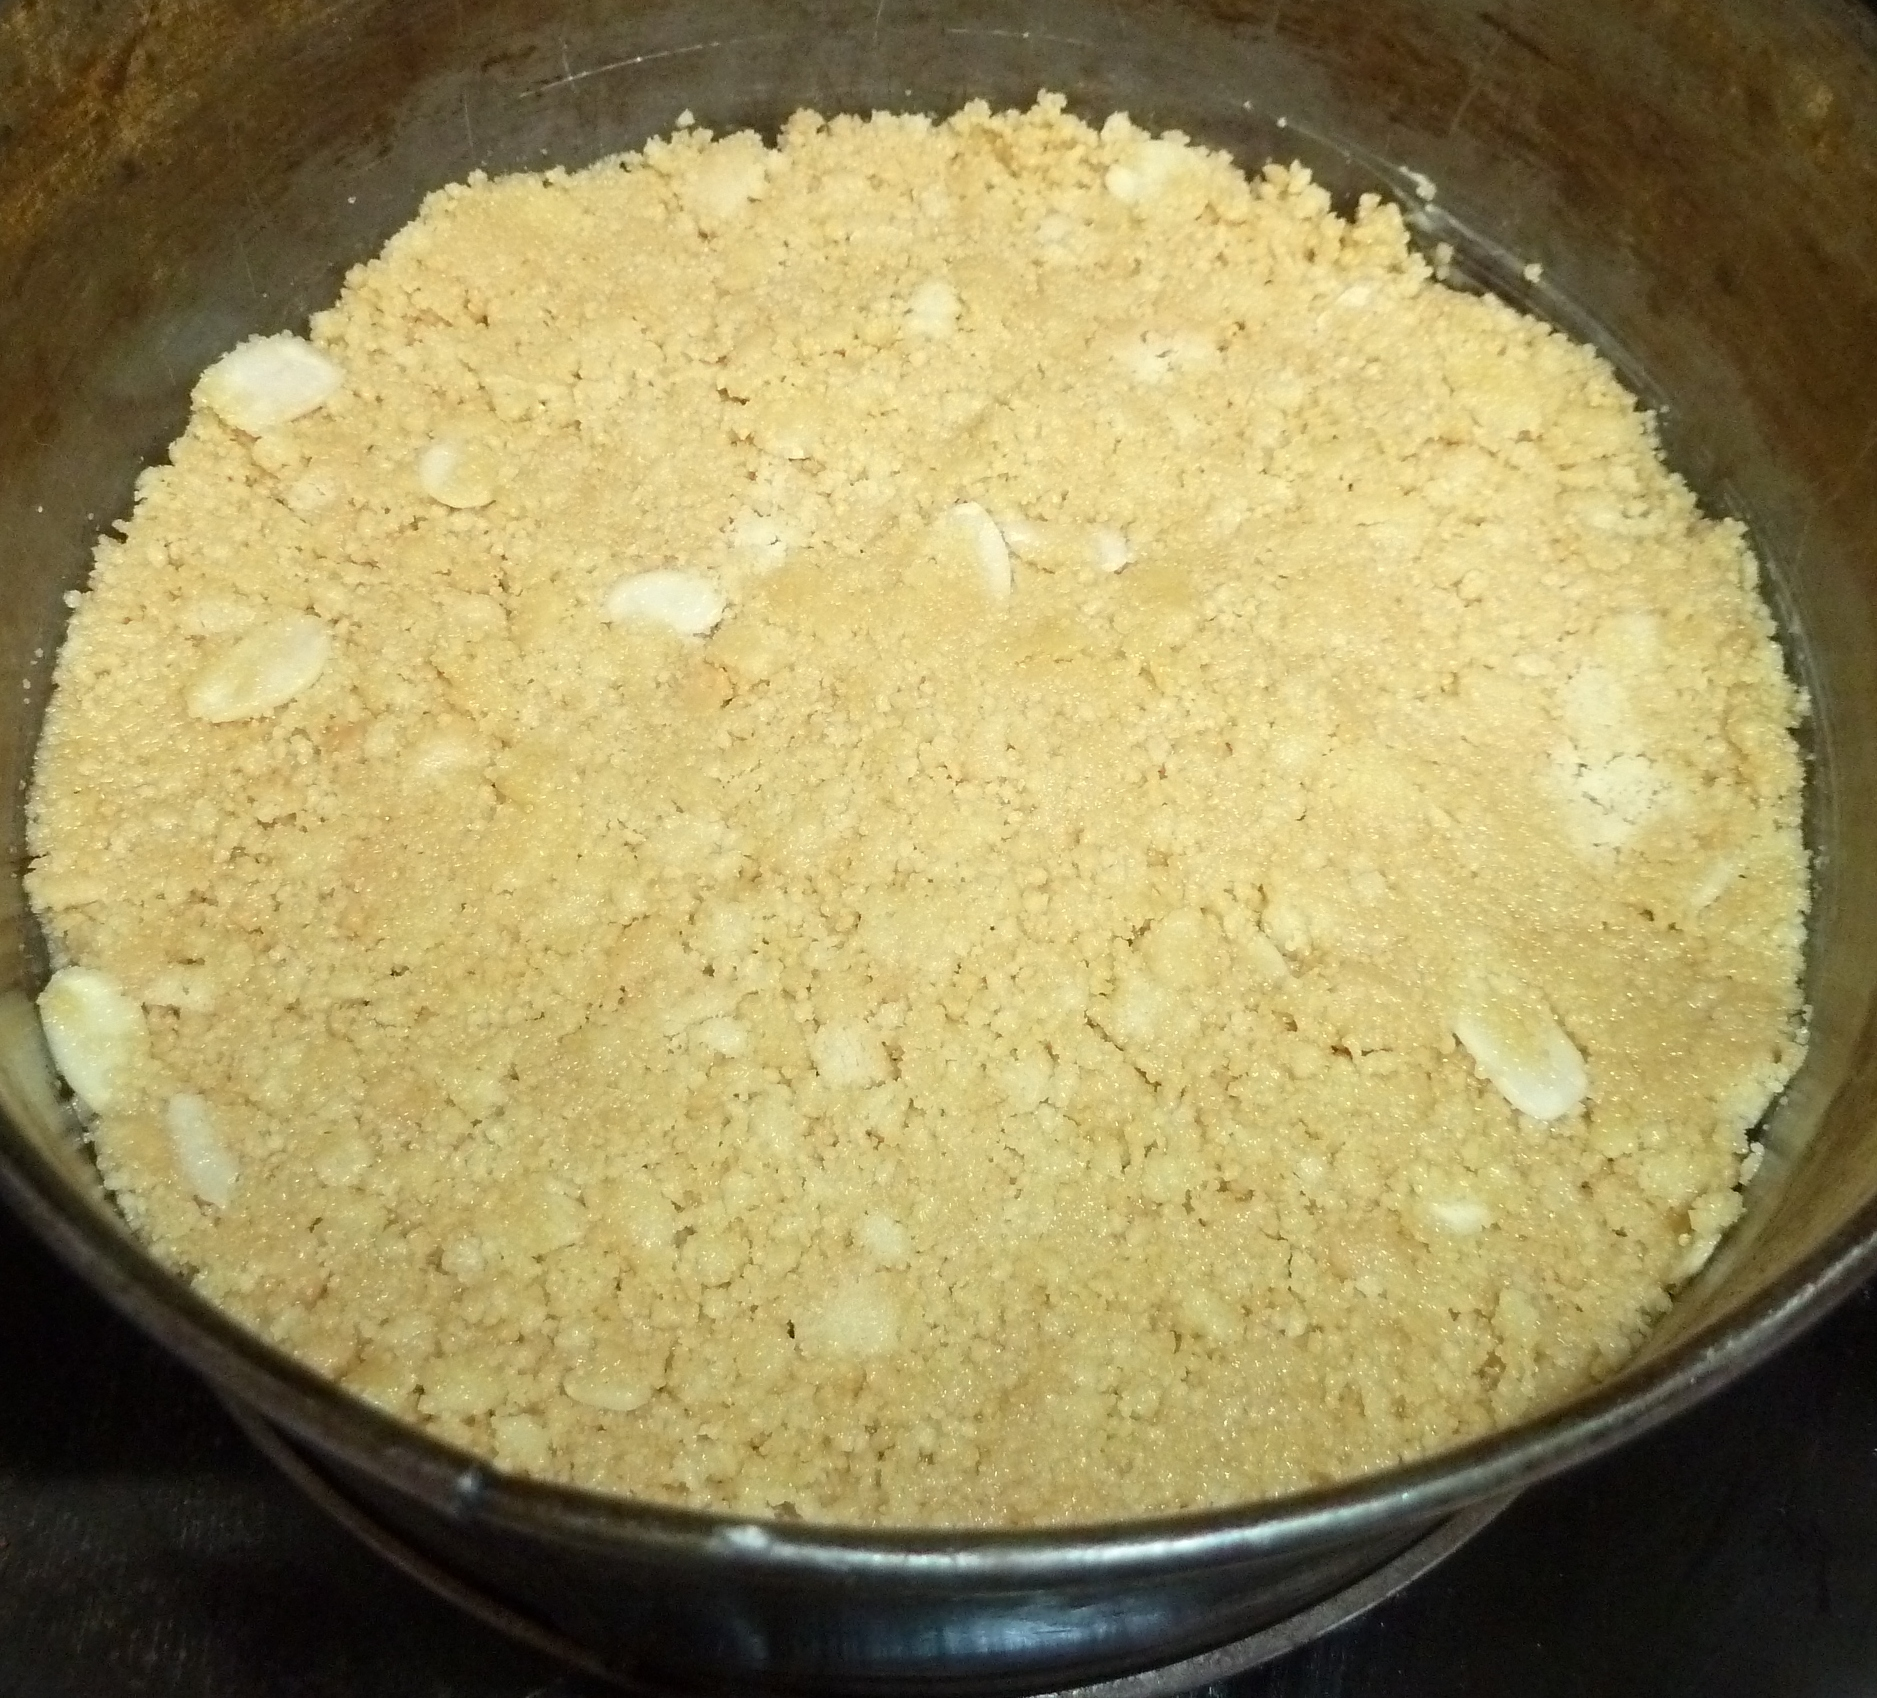 The next step was to prepare the pears to add to the cheesecake. I ...